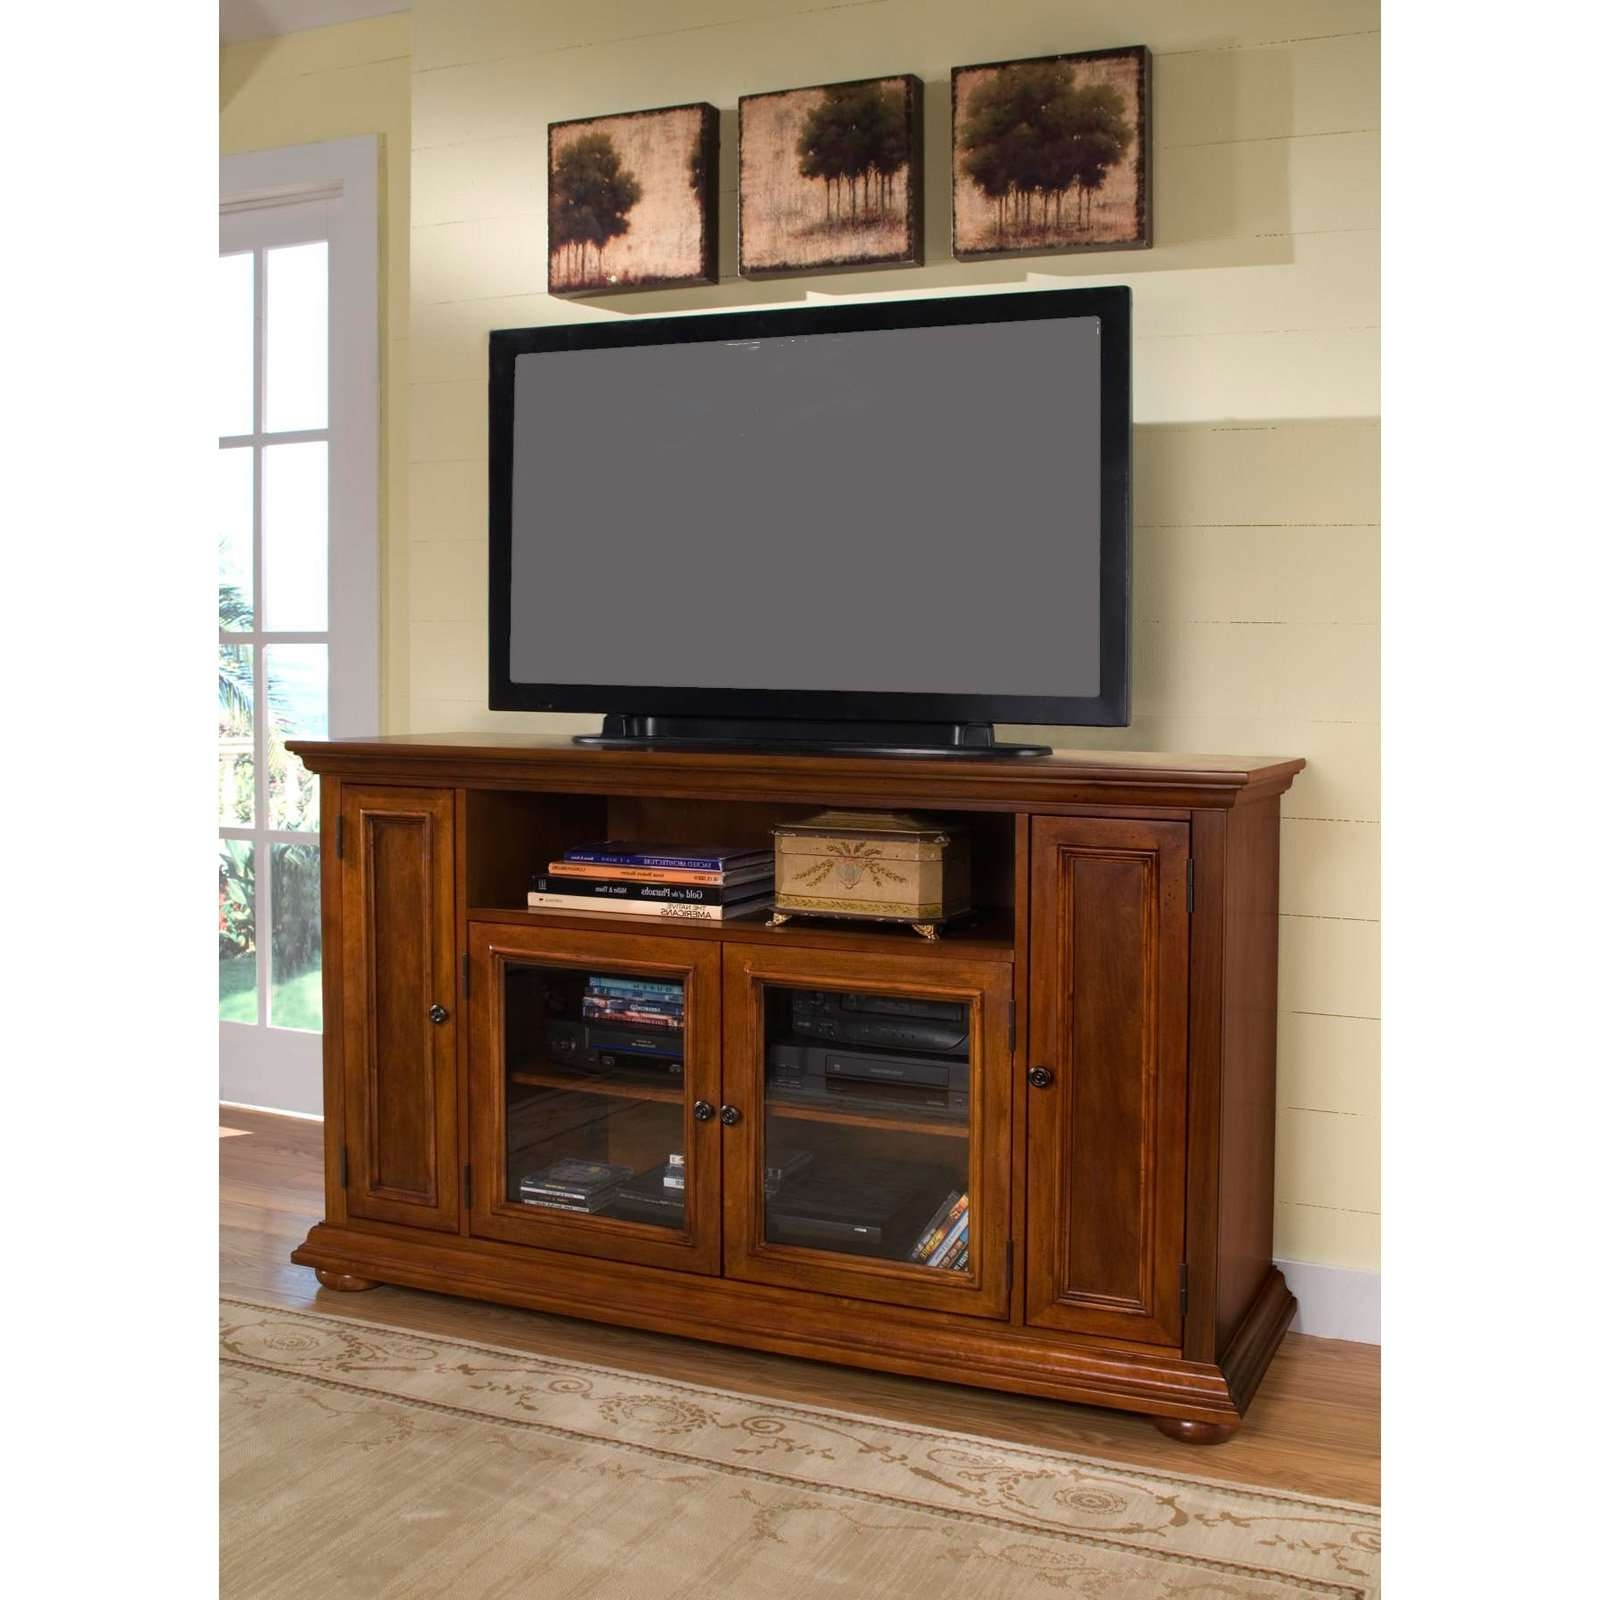 Rectangle Black Flat Screen Tv Over Brown Wooden Cabinet With Regarding Wall Mounted Tv Cabinets For Flat Screens With Doors (View 4 of 20)